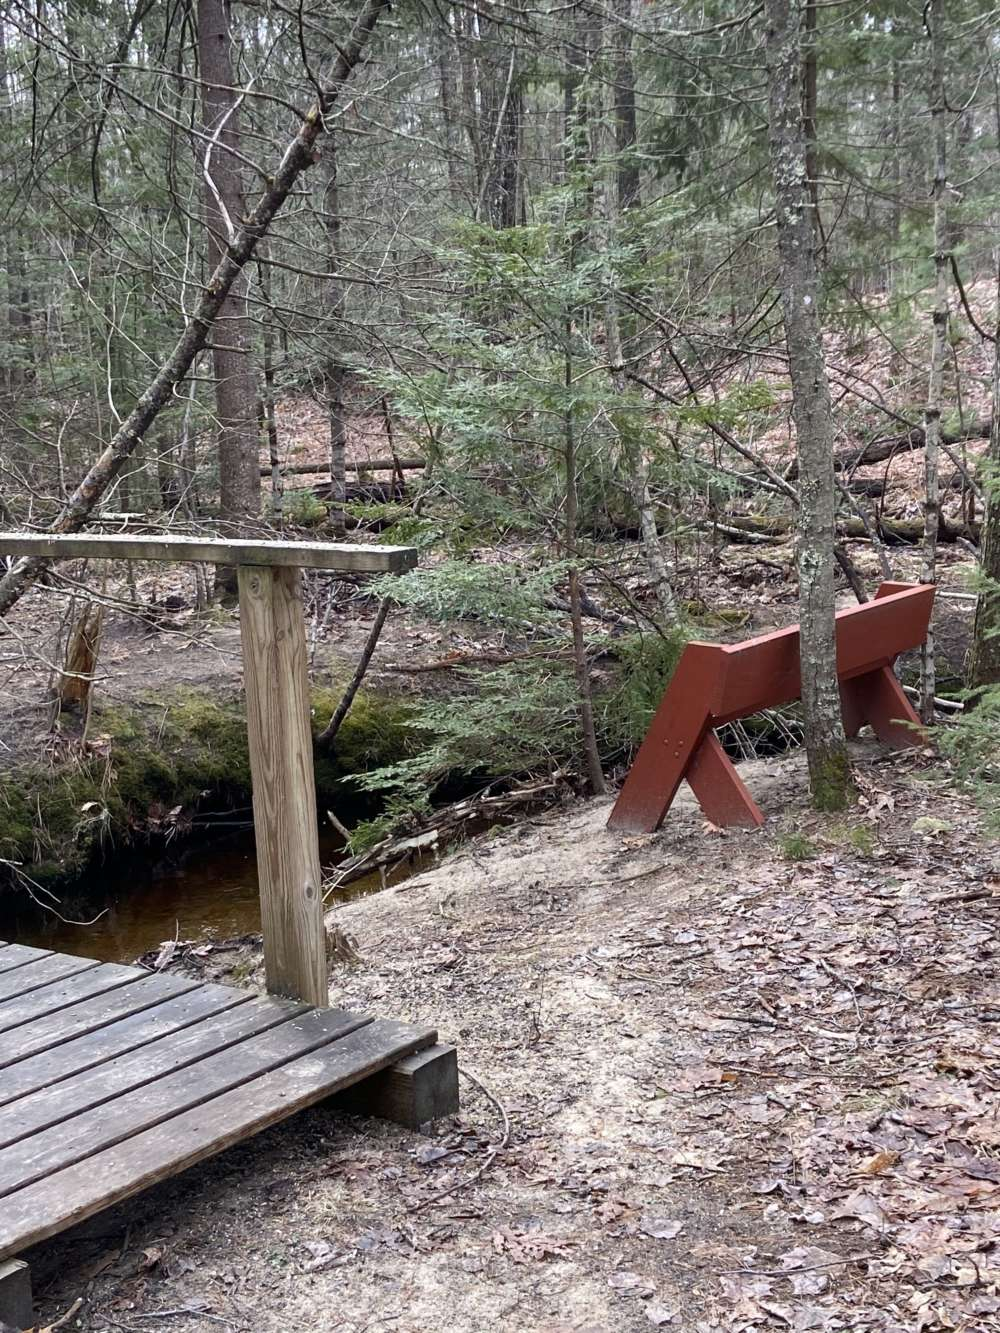 A bench and footbridge over a stream in a mixed forest during early spring.